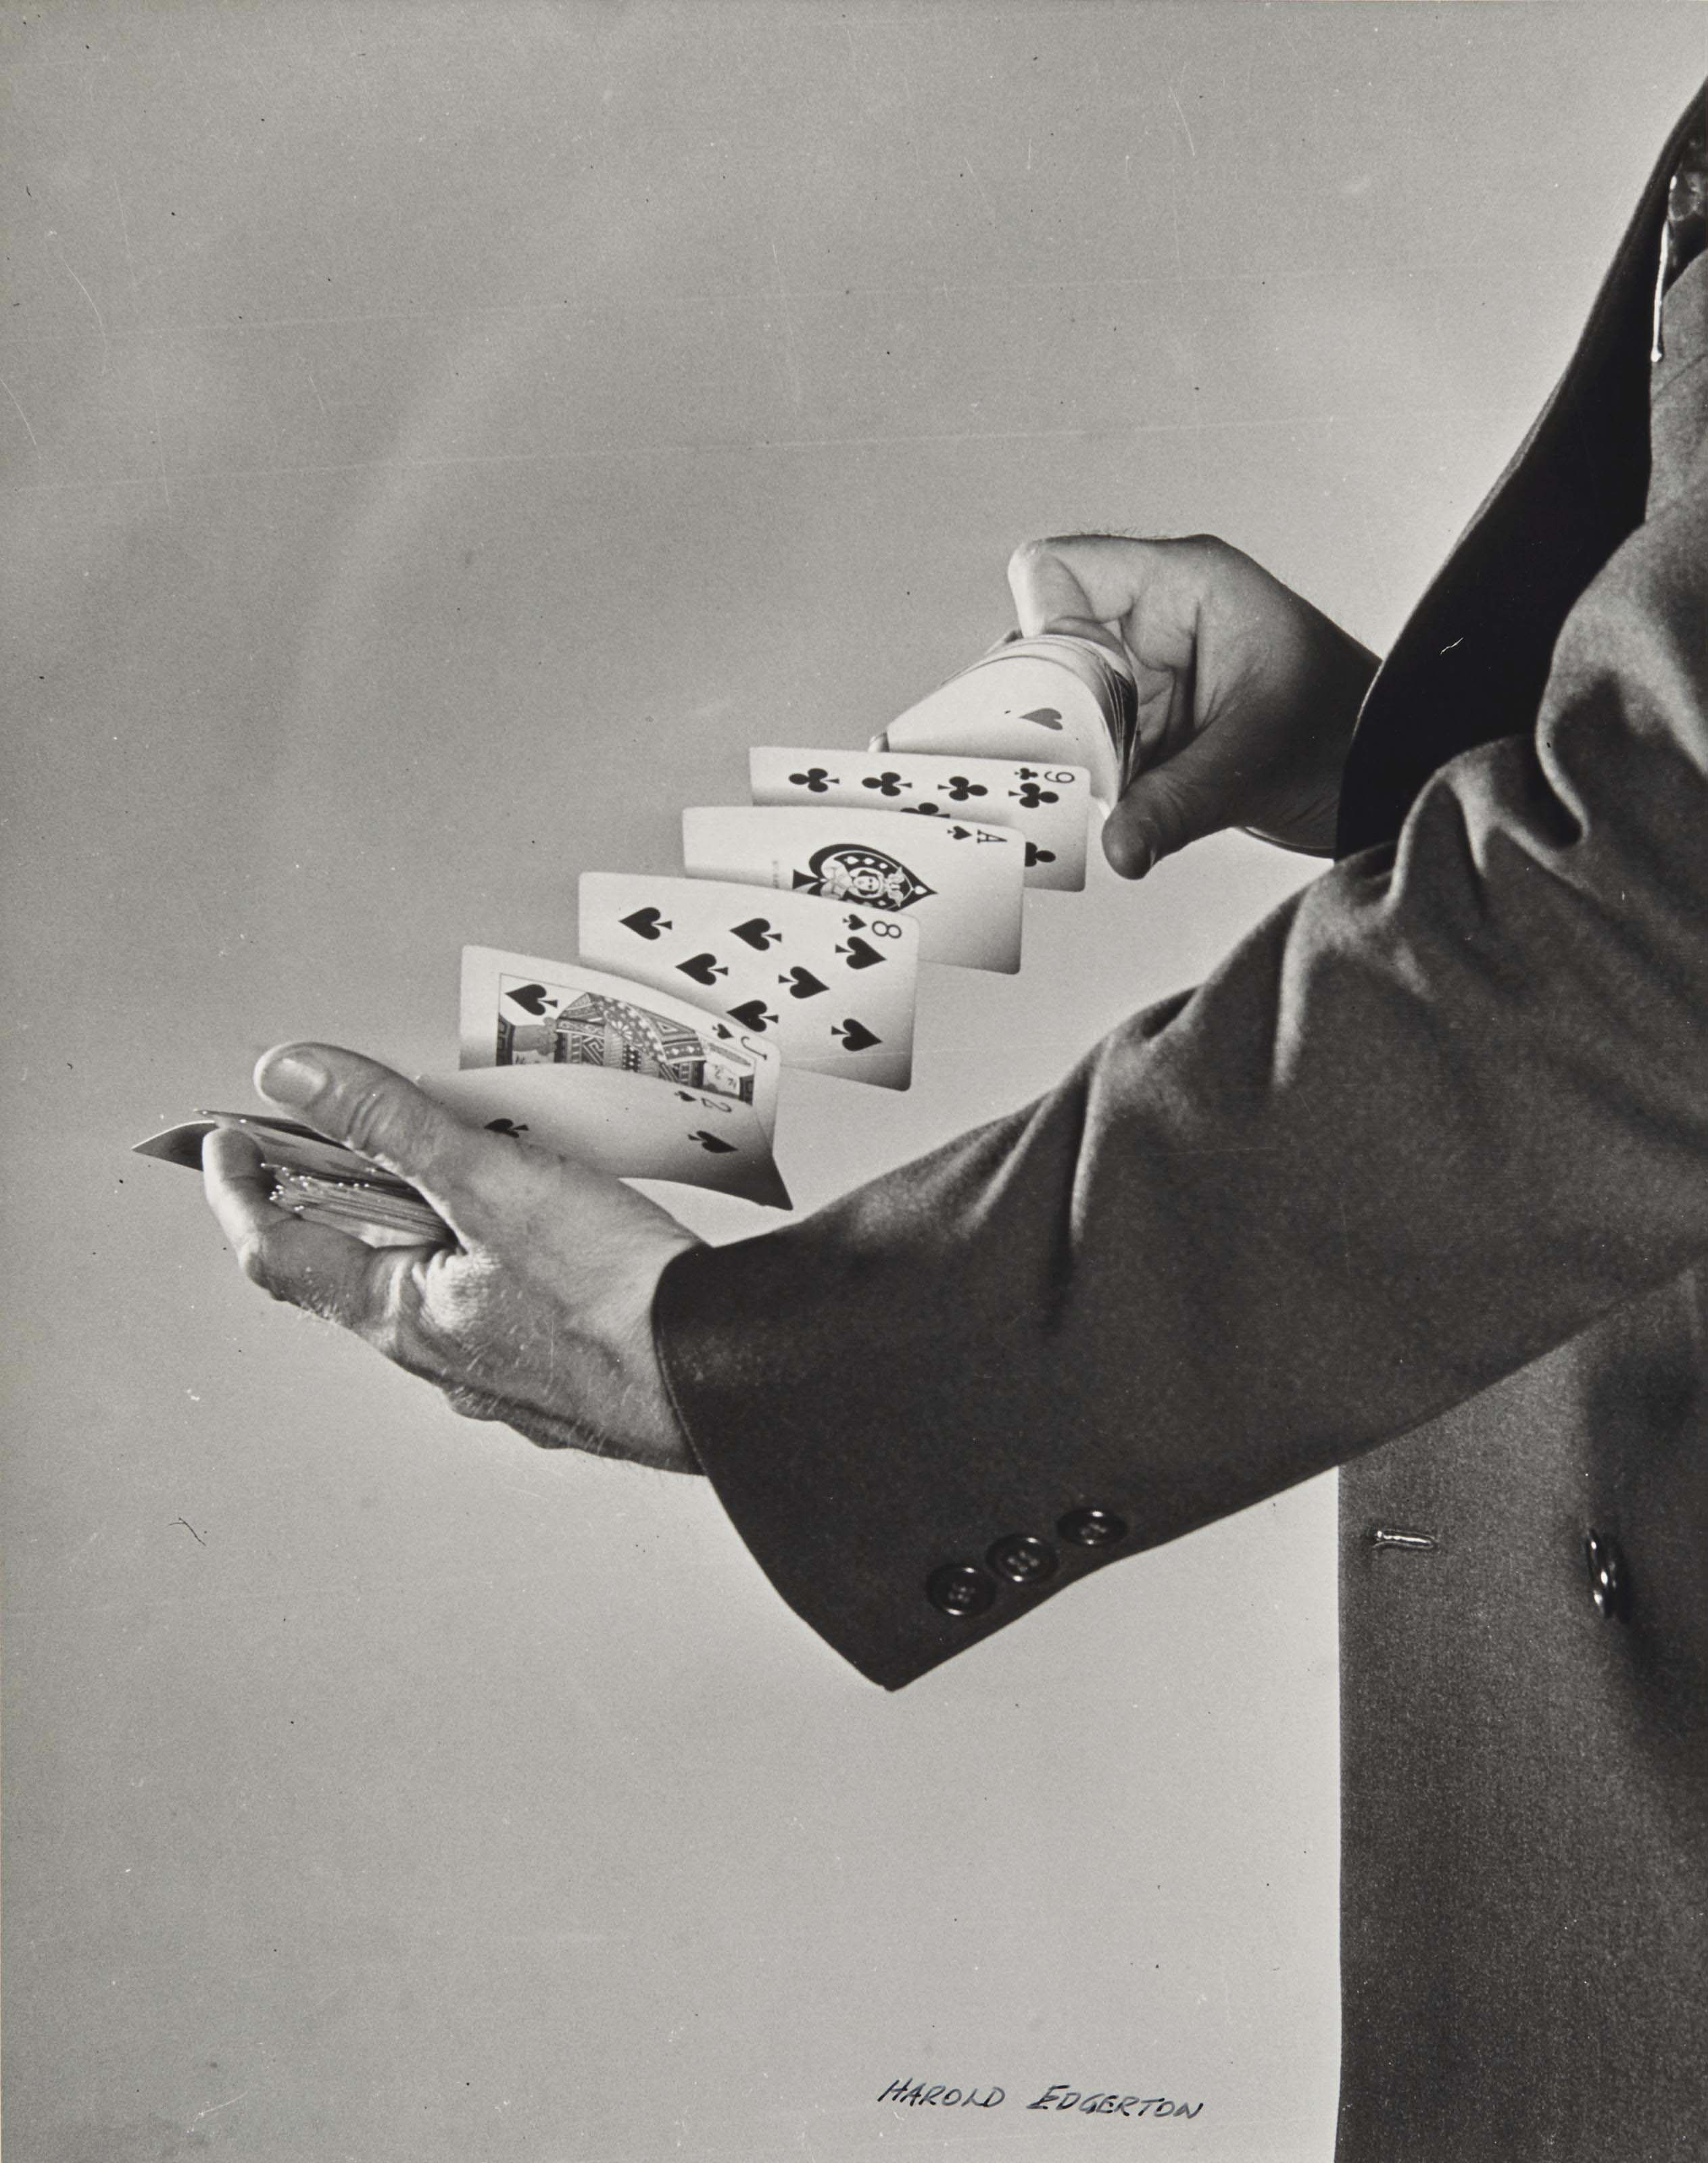 Fanning the cards, 1940